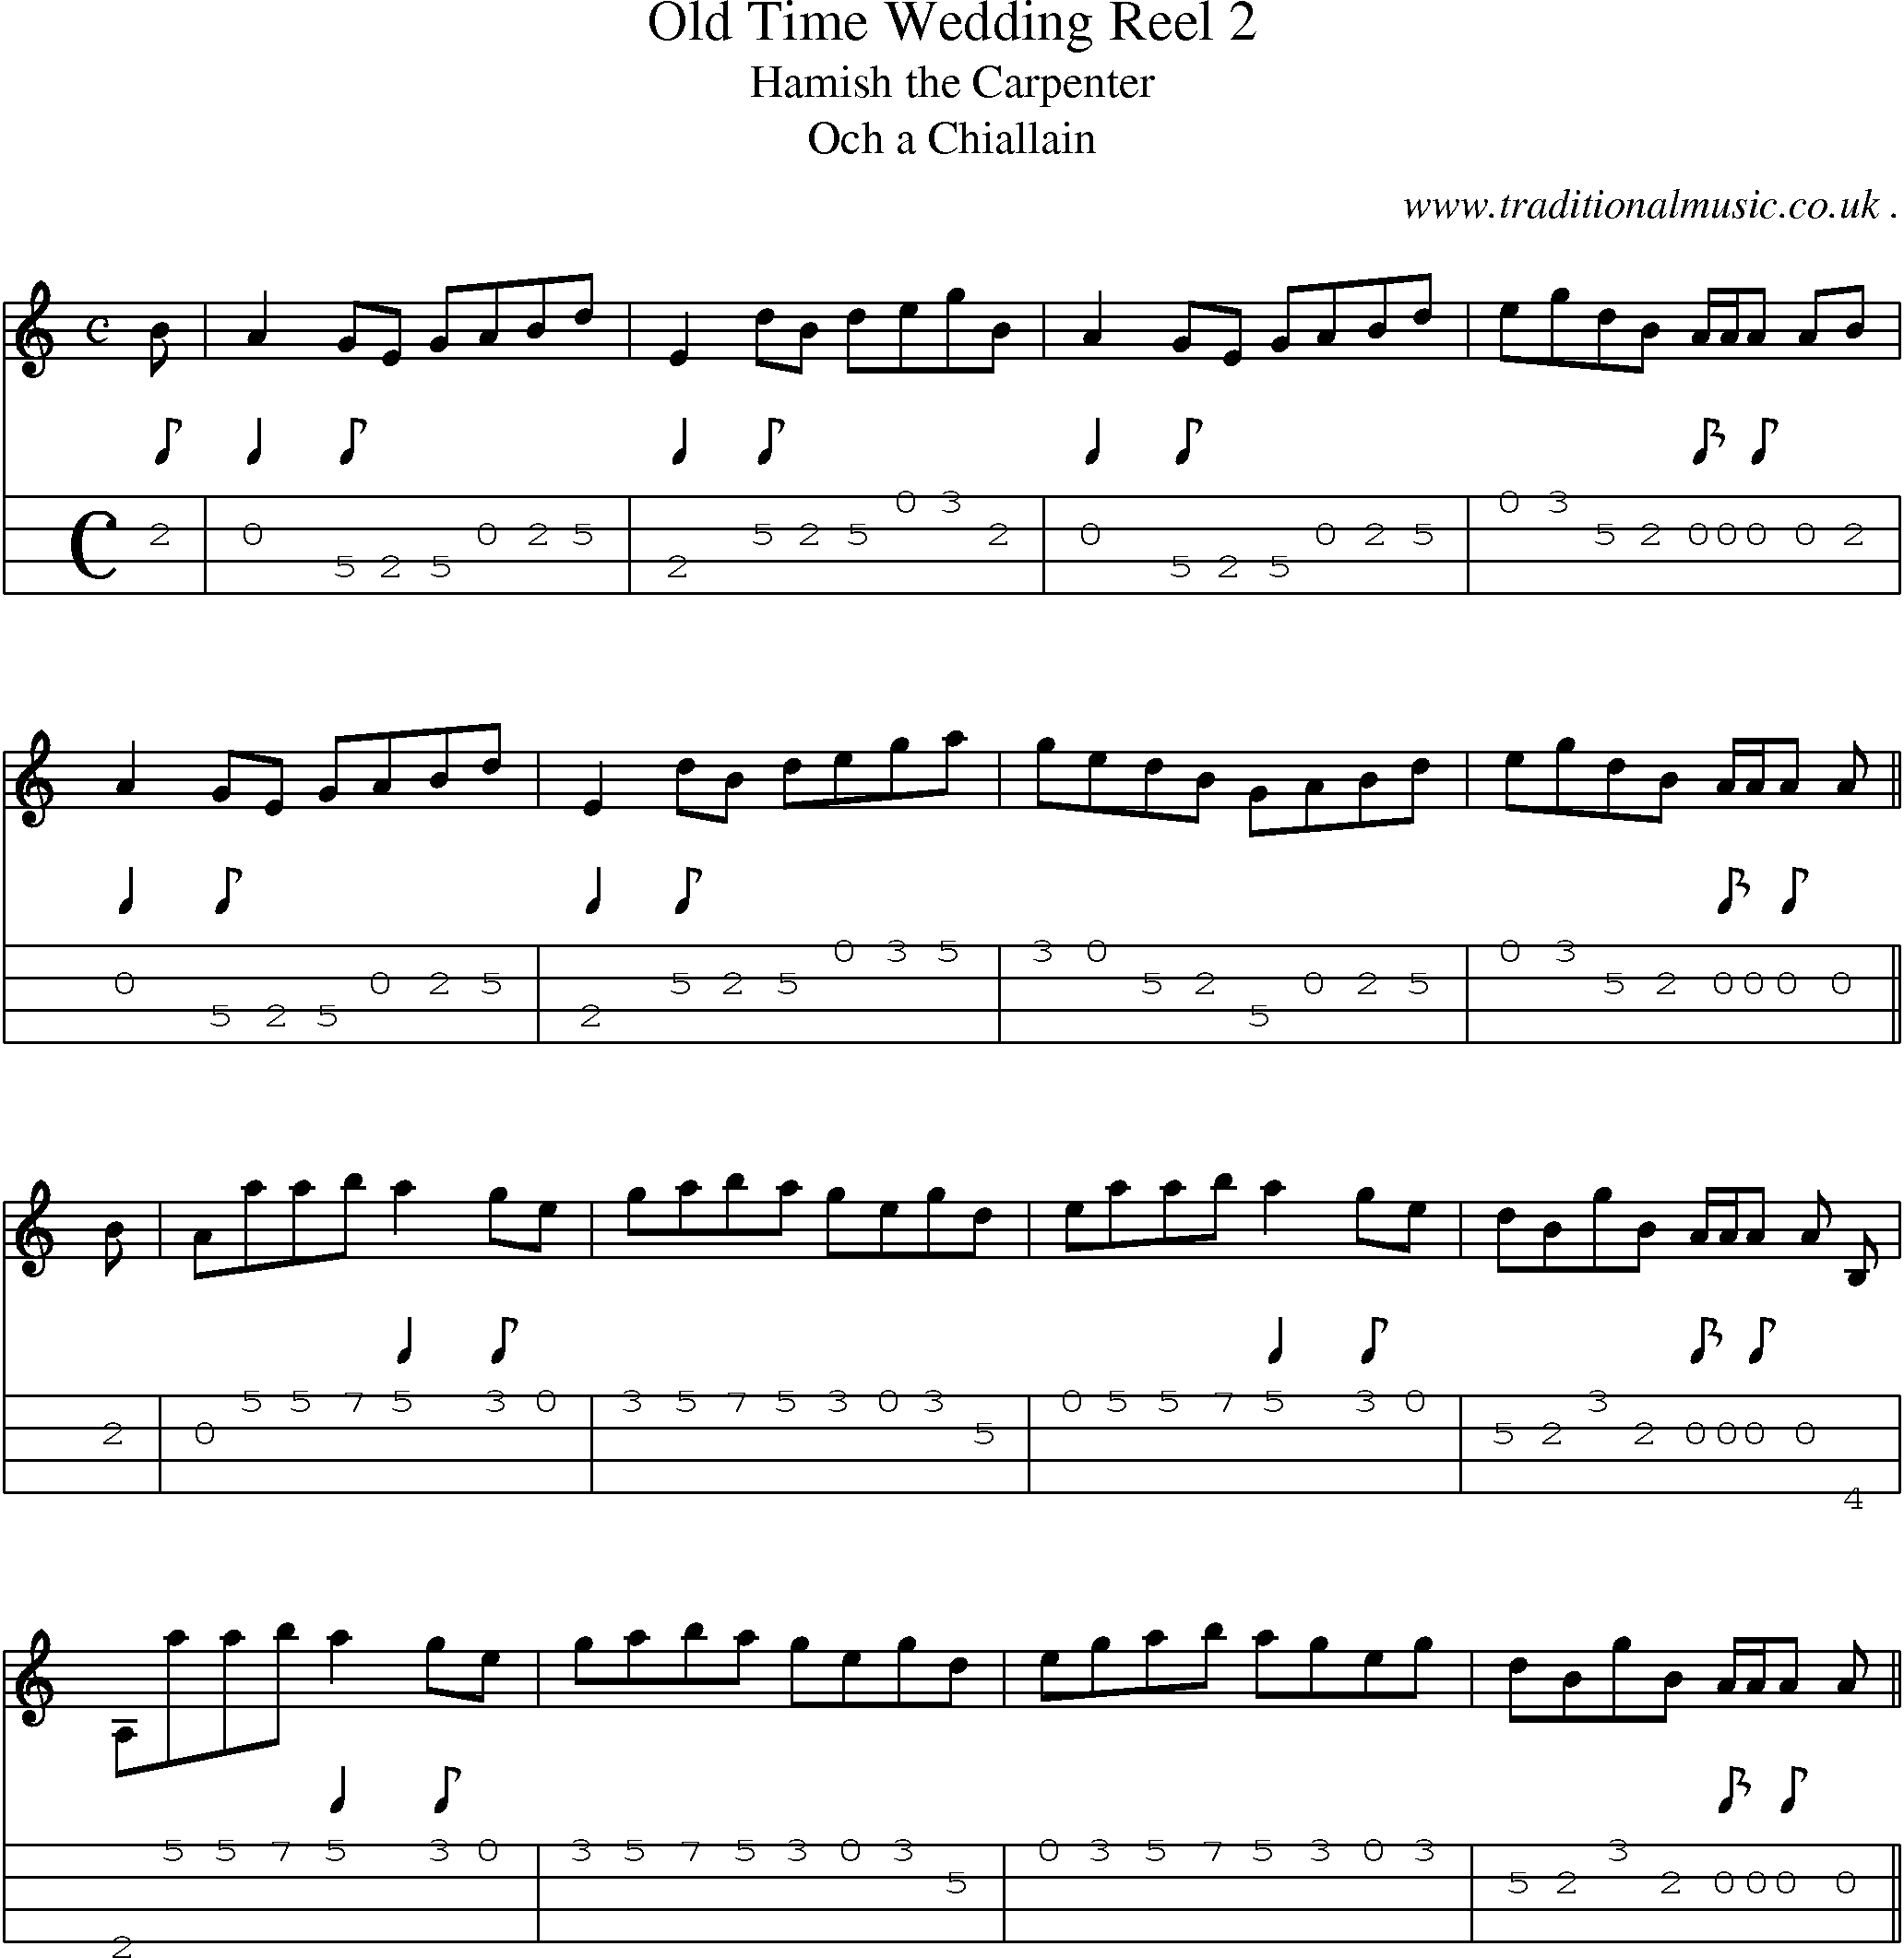 Music Score And Mandolin Tabs For Old Time Wedding Reel 2